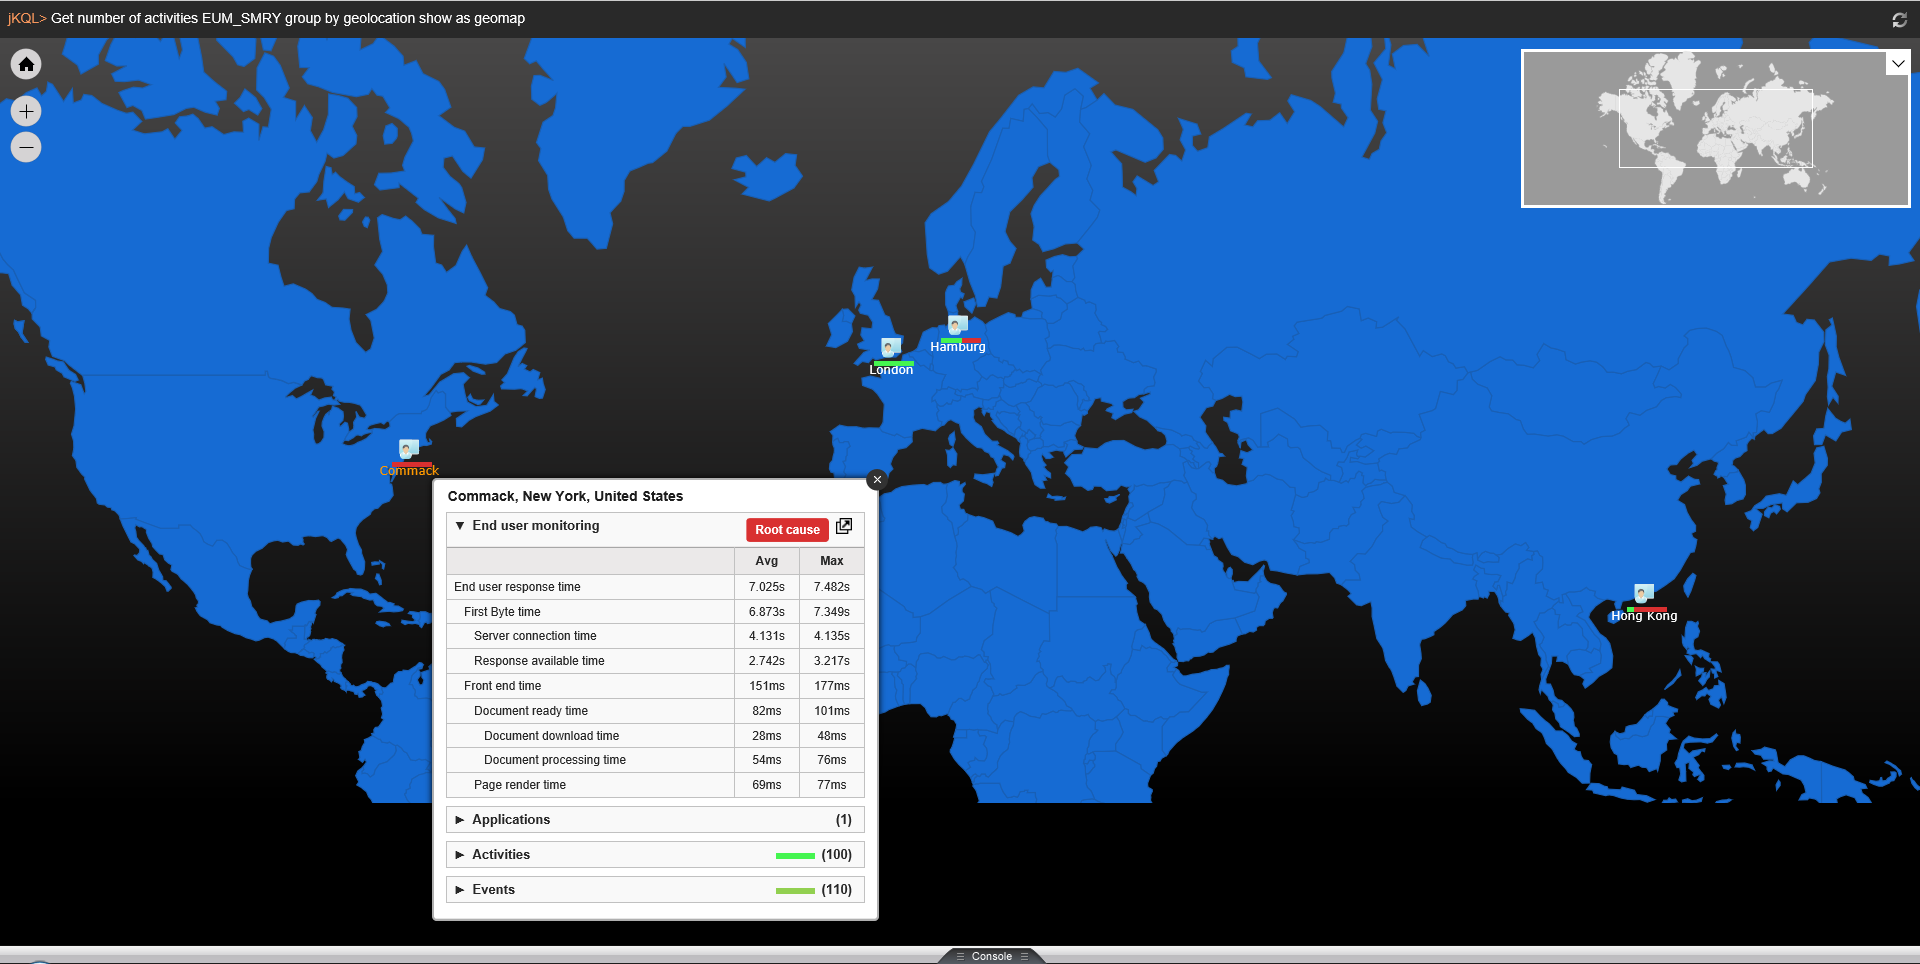 Track end-user activity across the world.